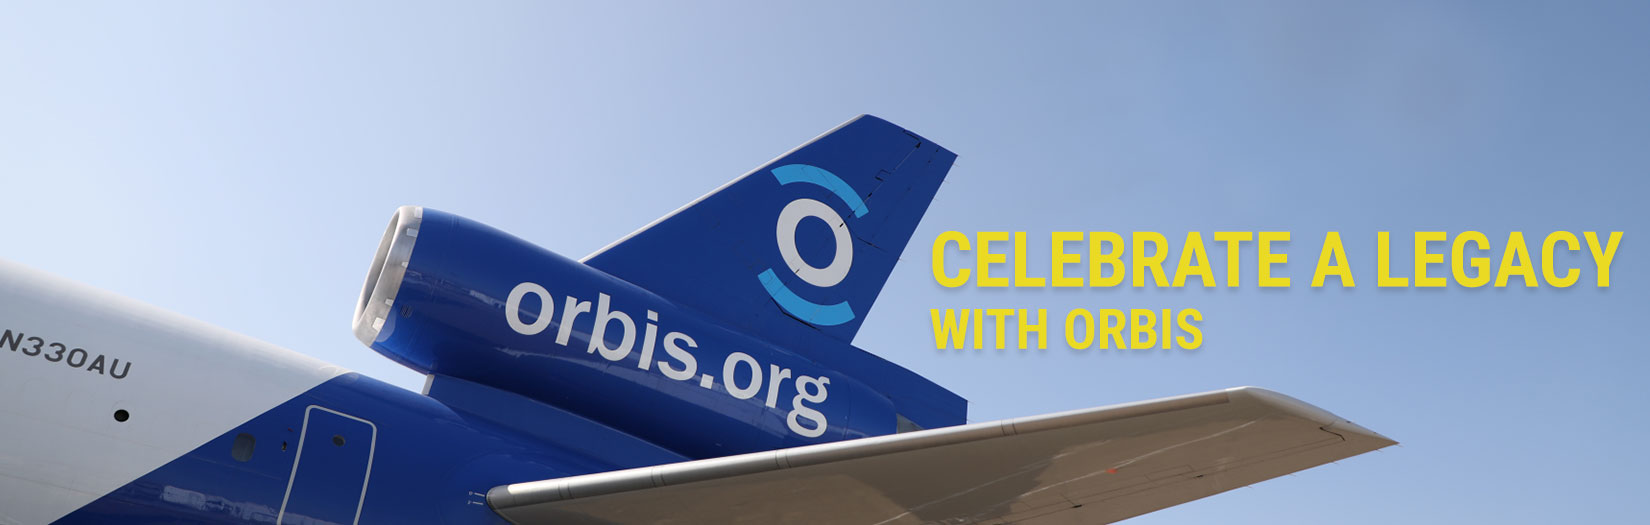 Celebrate a Legacy - Orbis Plane Flying